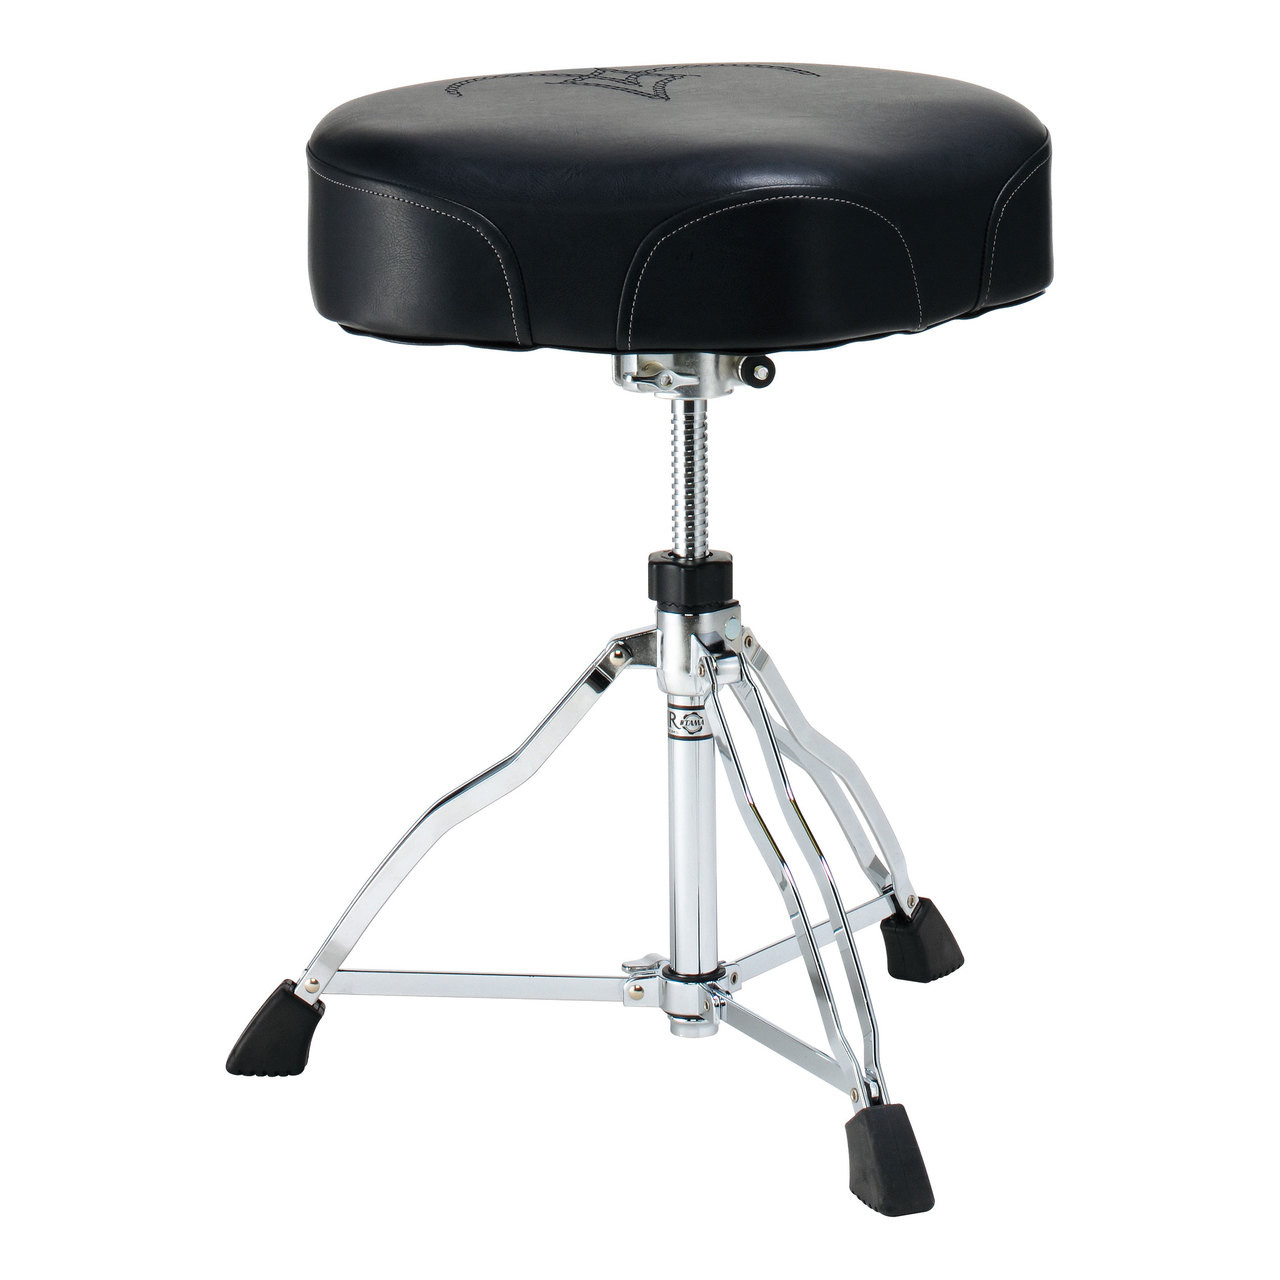 The Ergo Rider provides absolute ergonomic comfort and support. The hybrid of a round seat and a saddle style seat, it offers the maneuverability of the former, and the playing support of the latter. The front cutaway allows unimpeded thigh movement even during the most rapid double bass patterns.